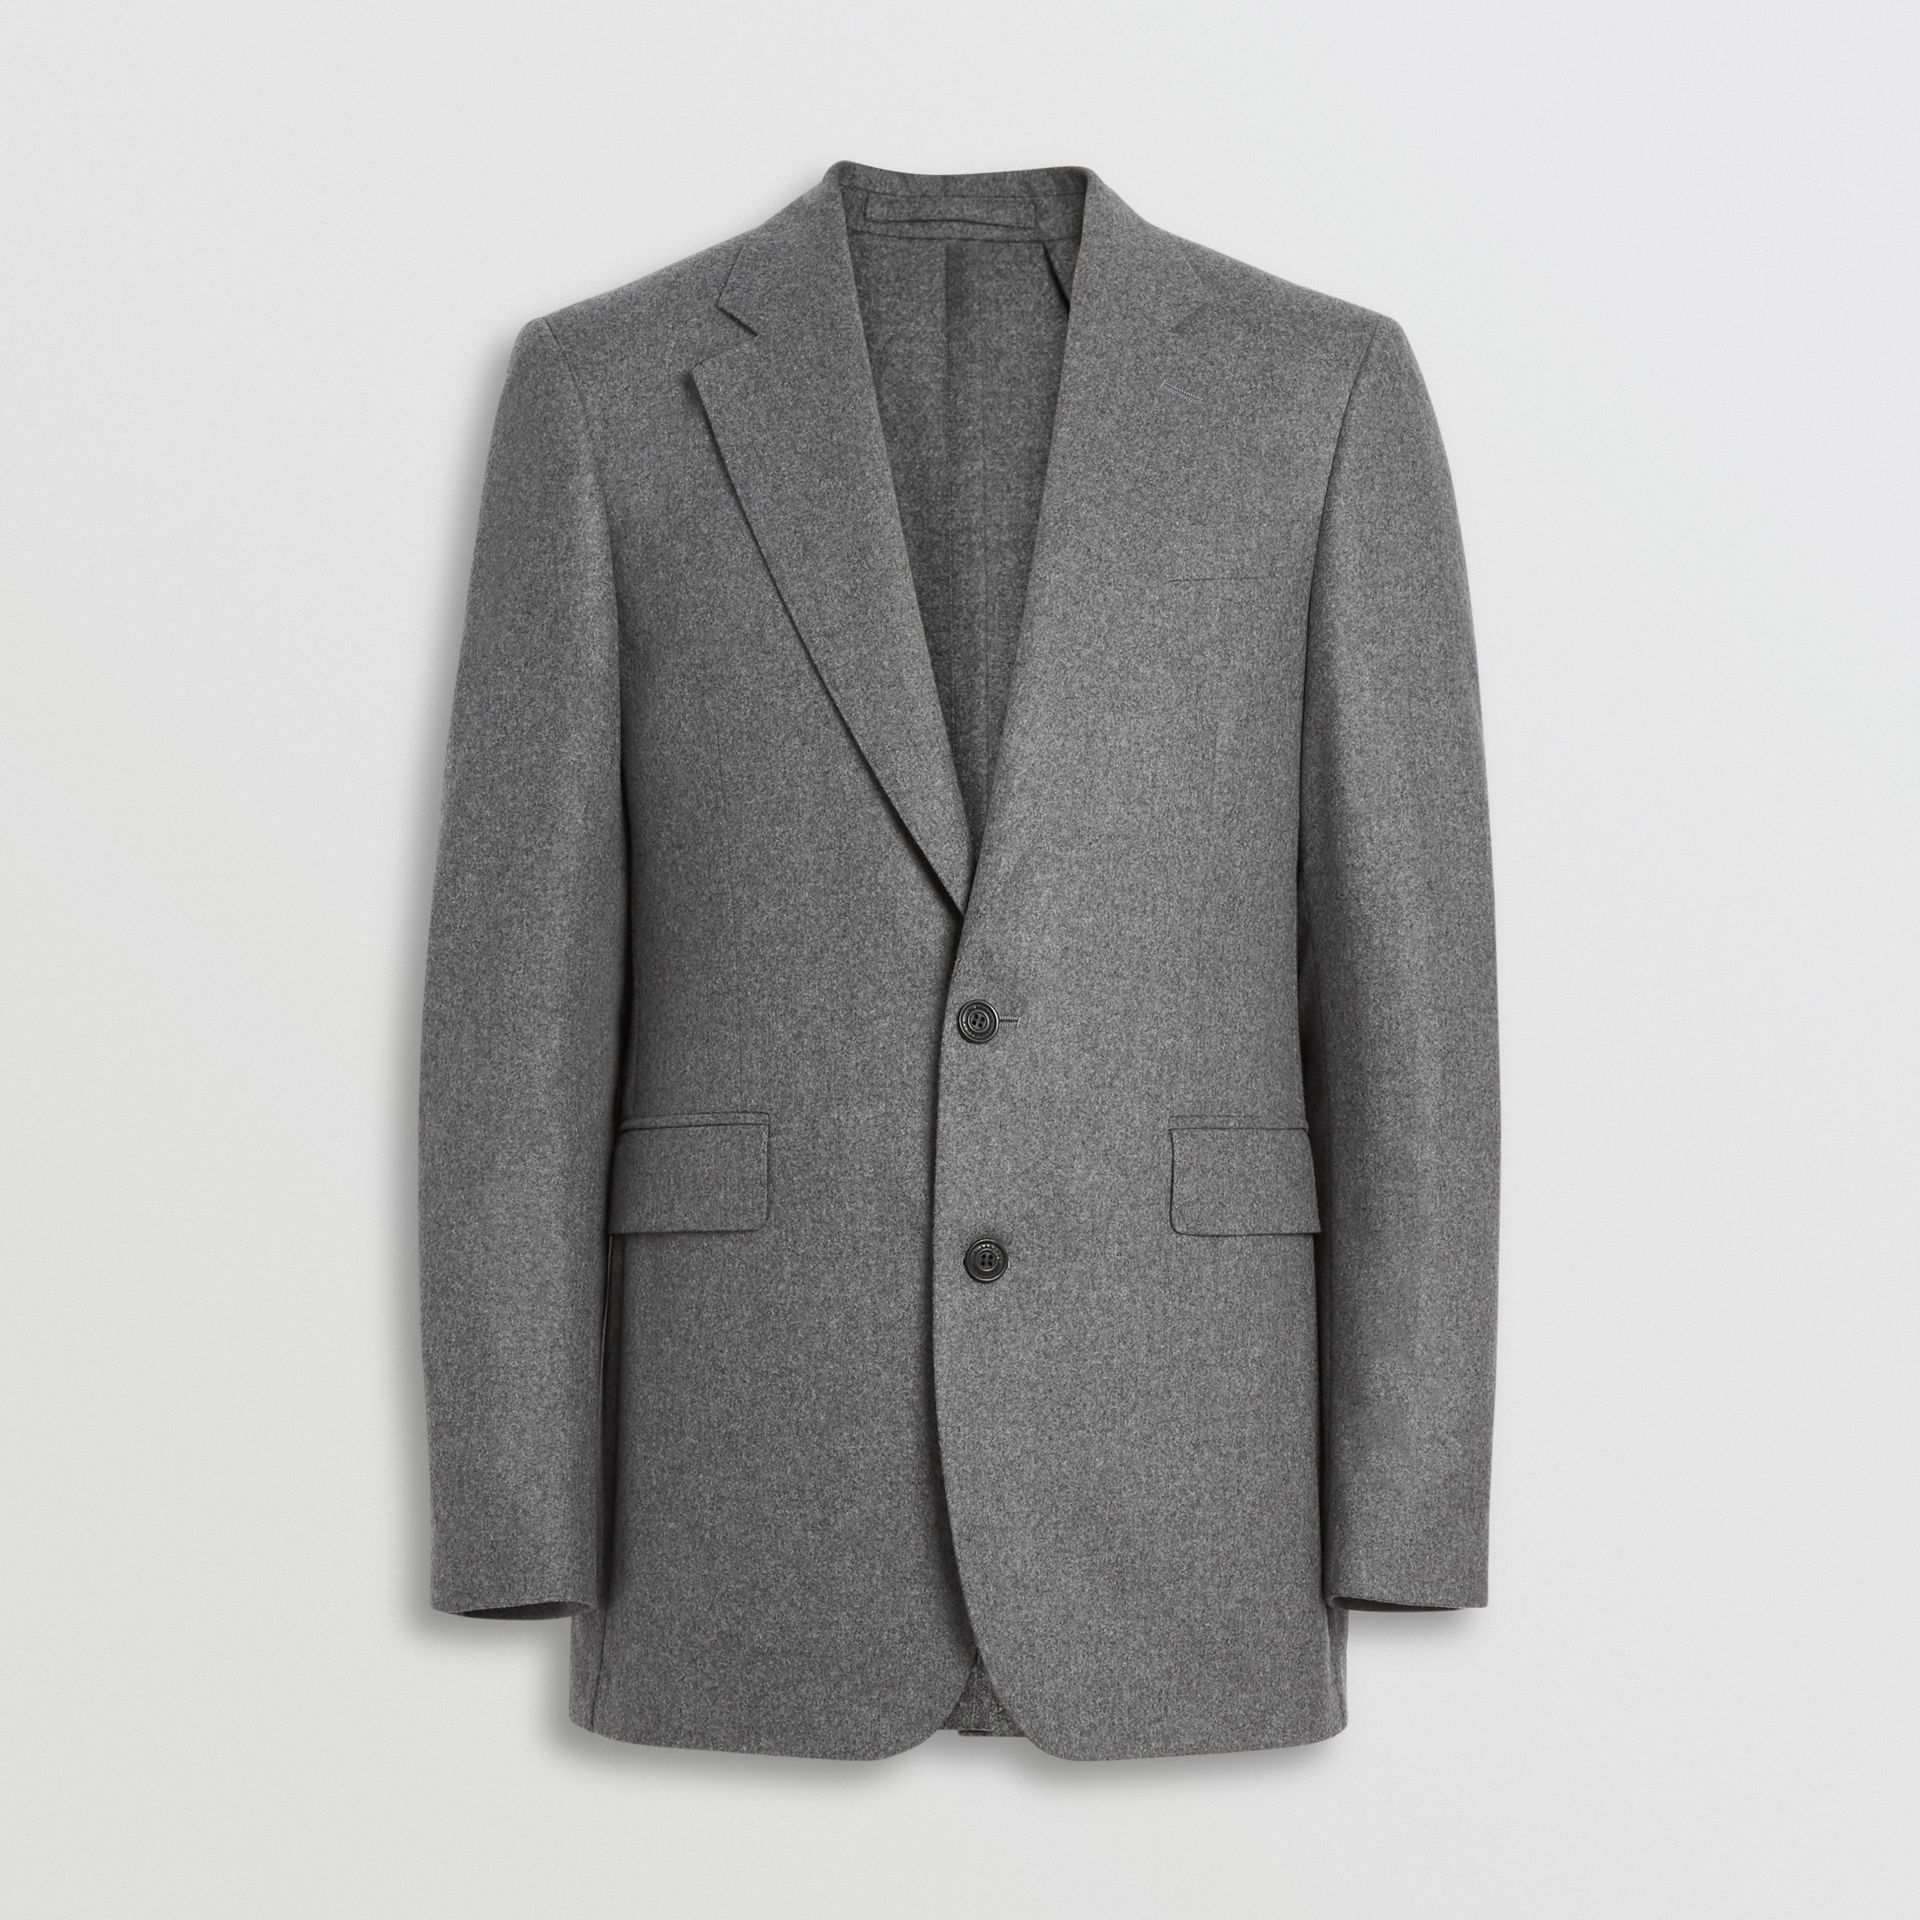 Classic Fit Wool Cashmere Tailored Jacket in Mid Grey Melange - Men | Burberry United Kingdom - gallery image 3